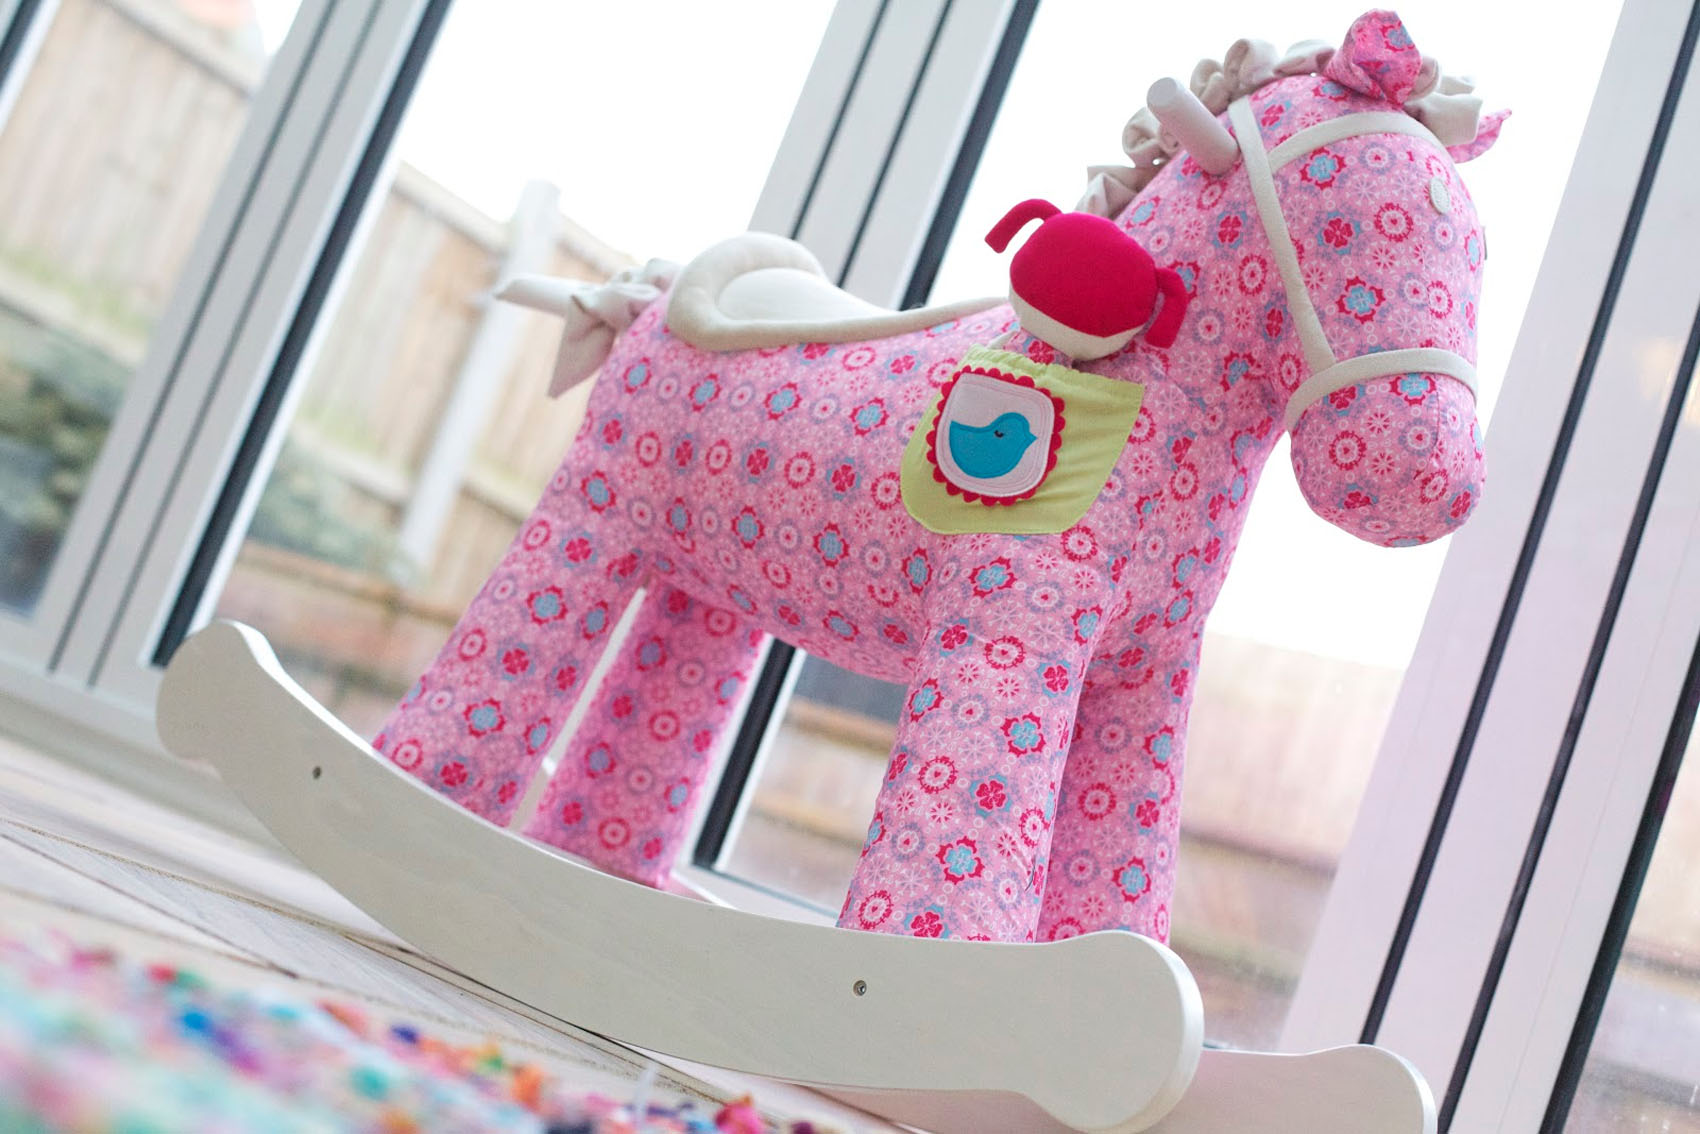 horse toy for baby 48658